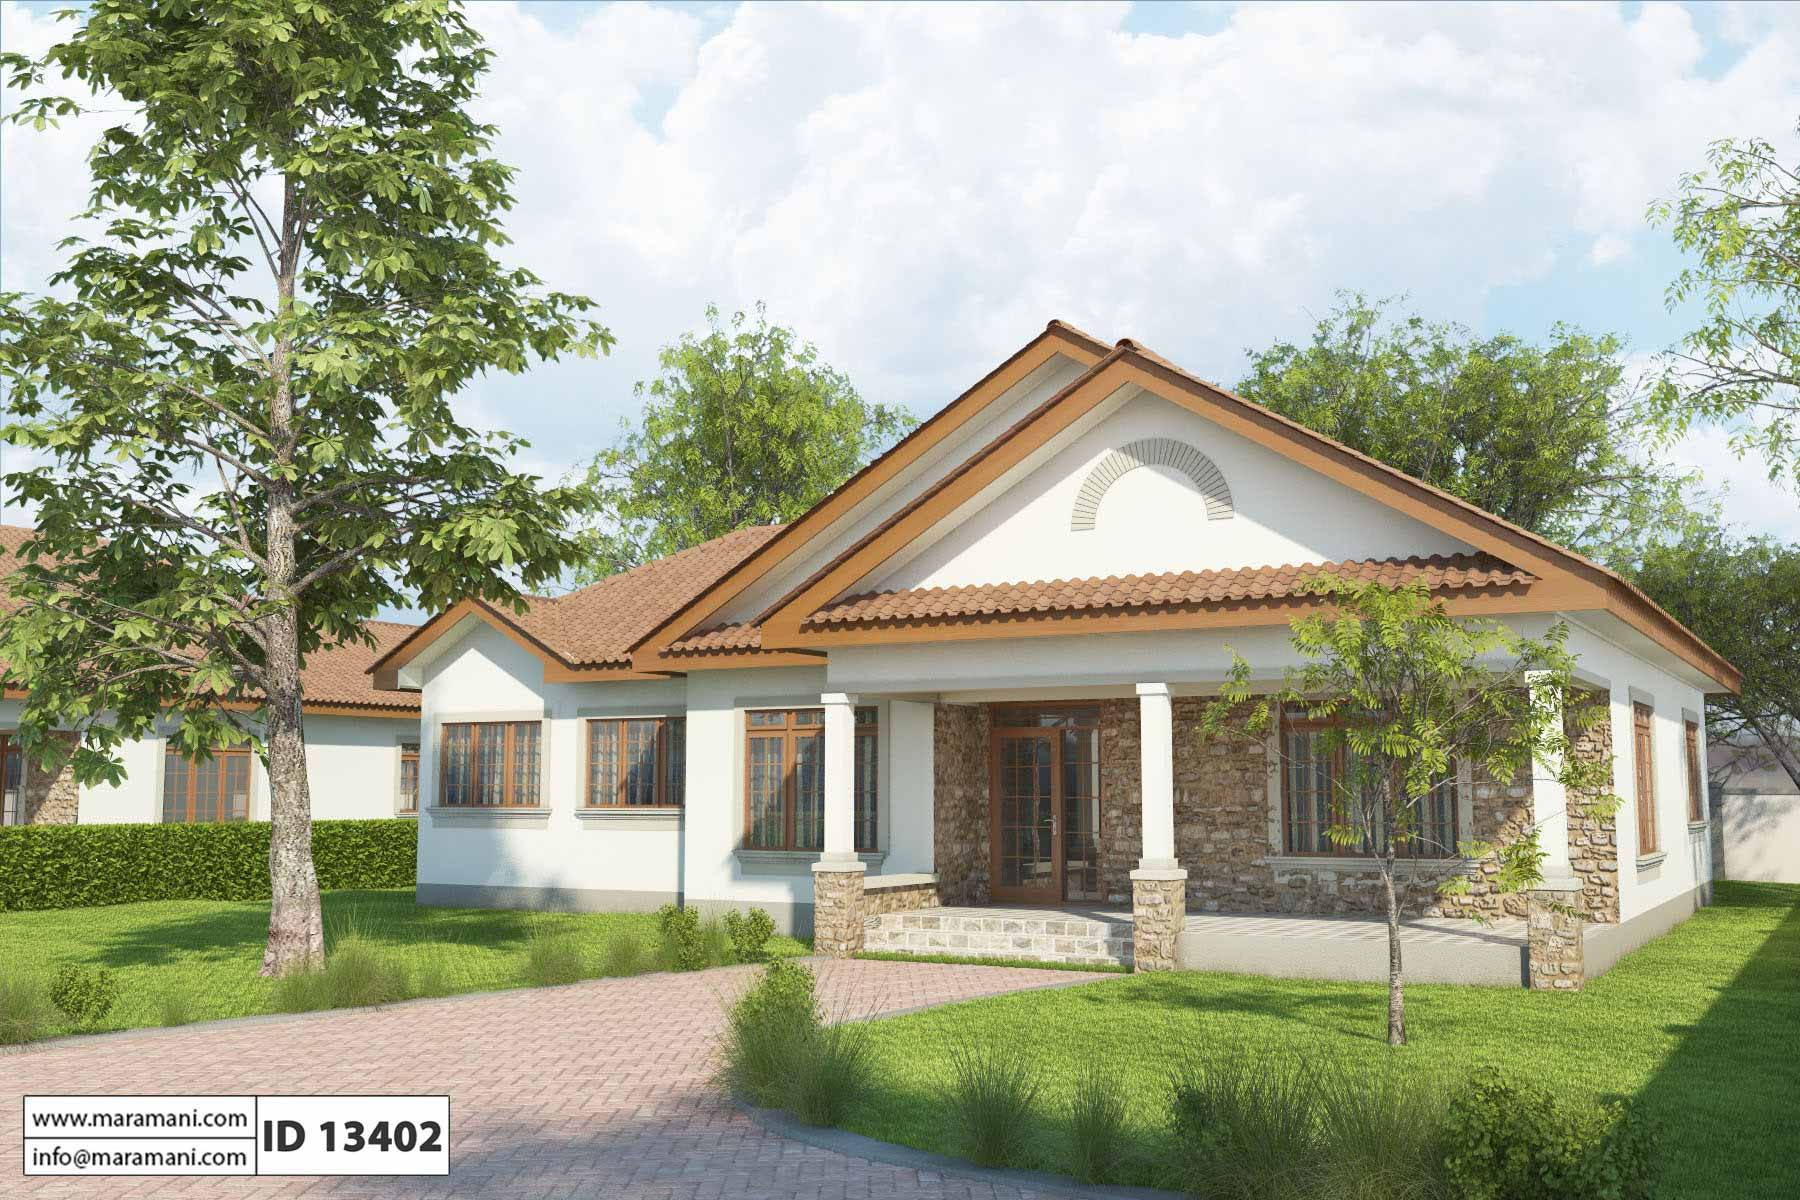 Simple 3 bedroom house plan id 13402 house designs by for Simple house designs 3 bedrooms